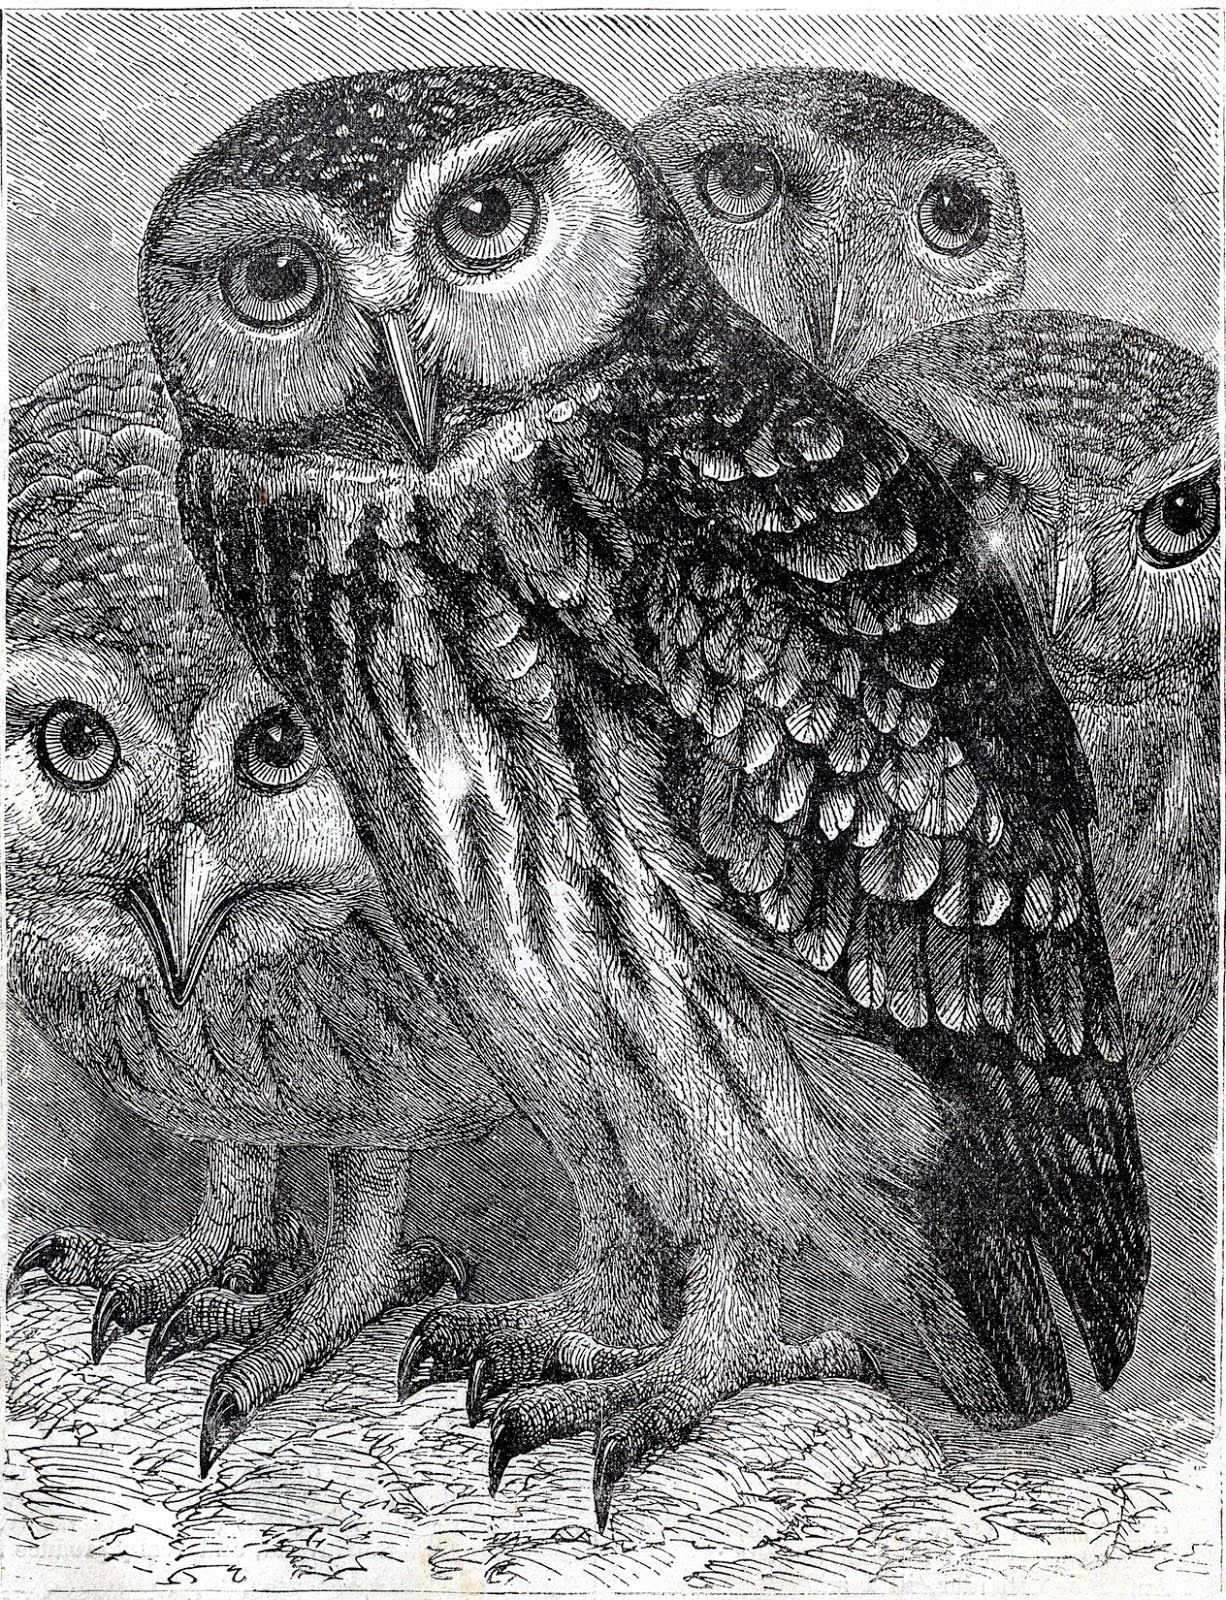 Amazing Illustration Of A Group Of Owls So Many Possibilities Hand Tinting The B Image Or